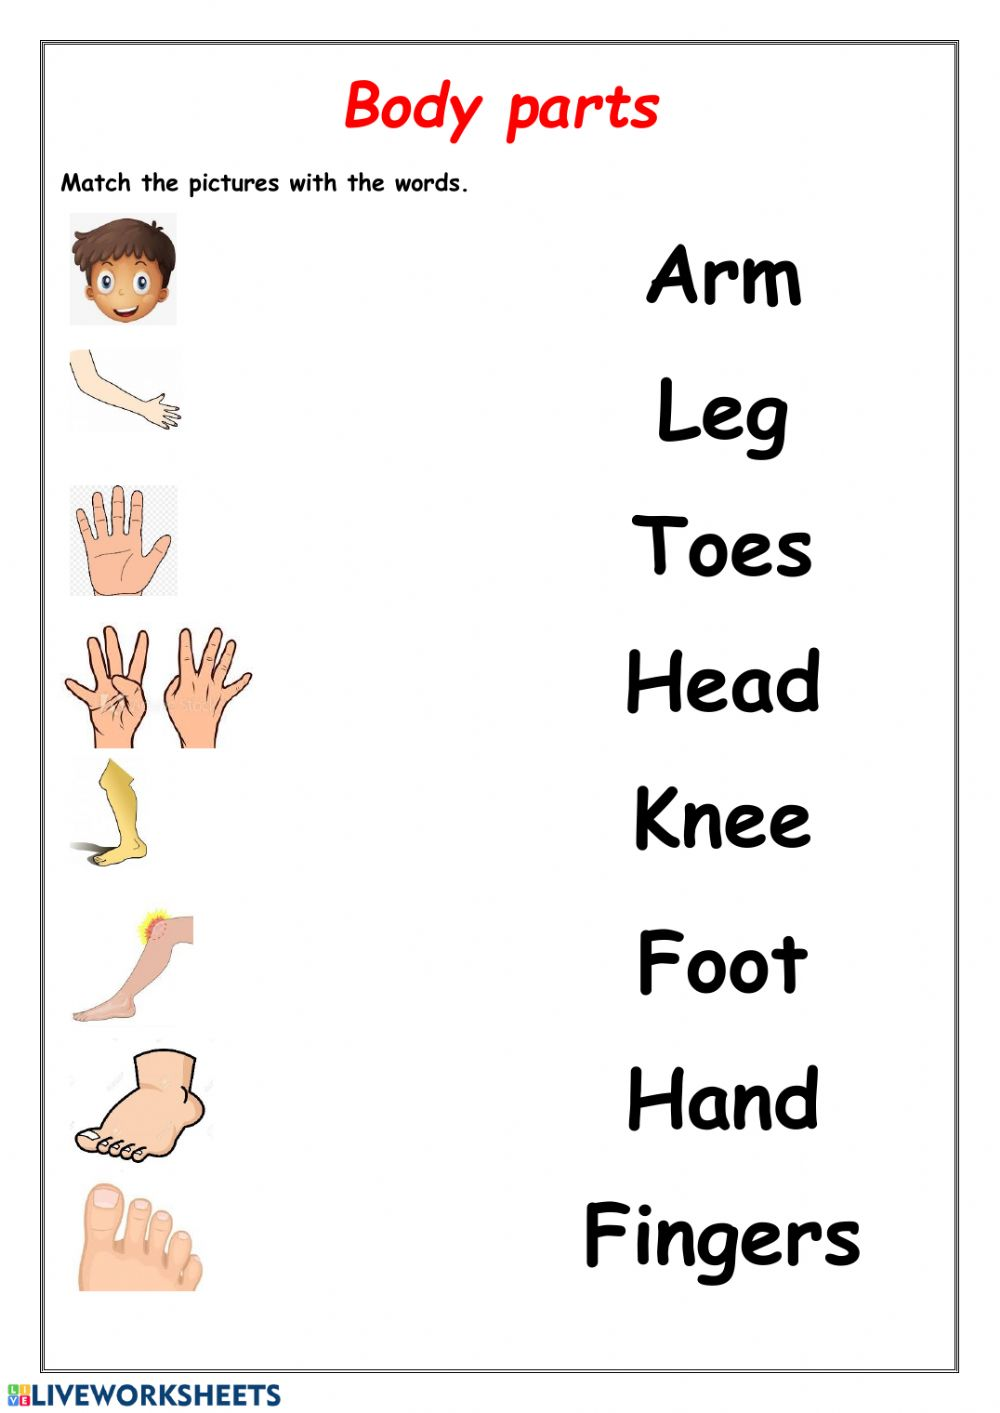 medium resolution of Body parts activity for 1